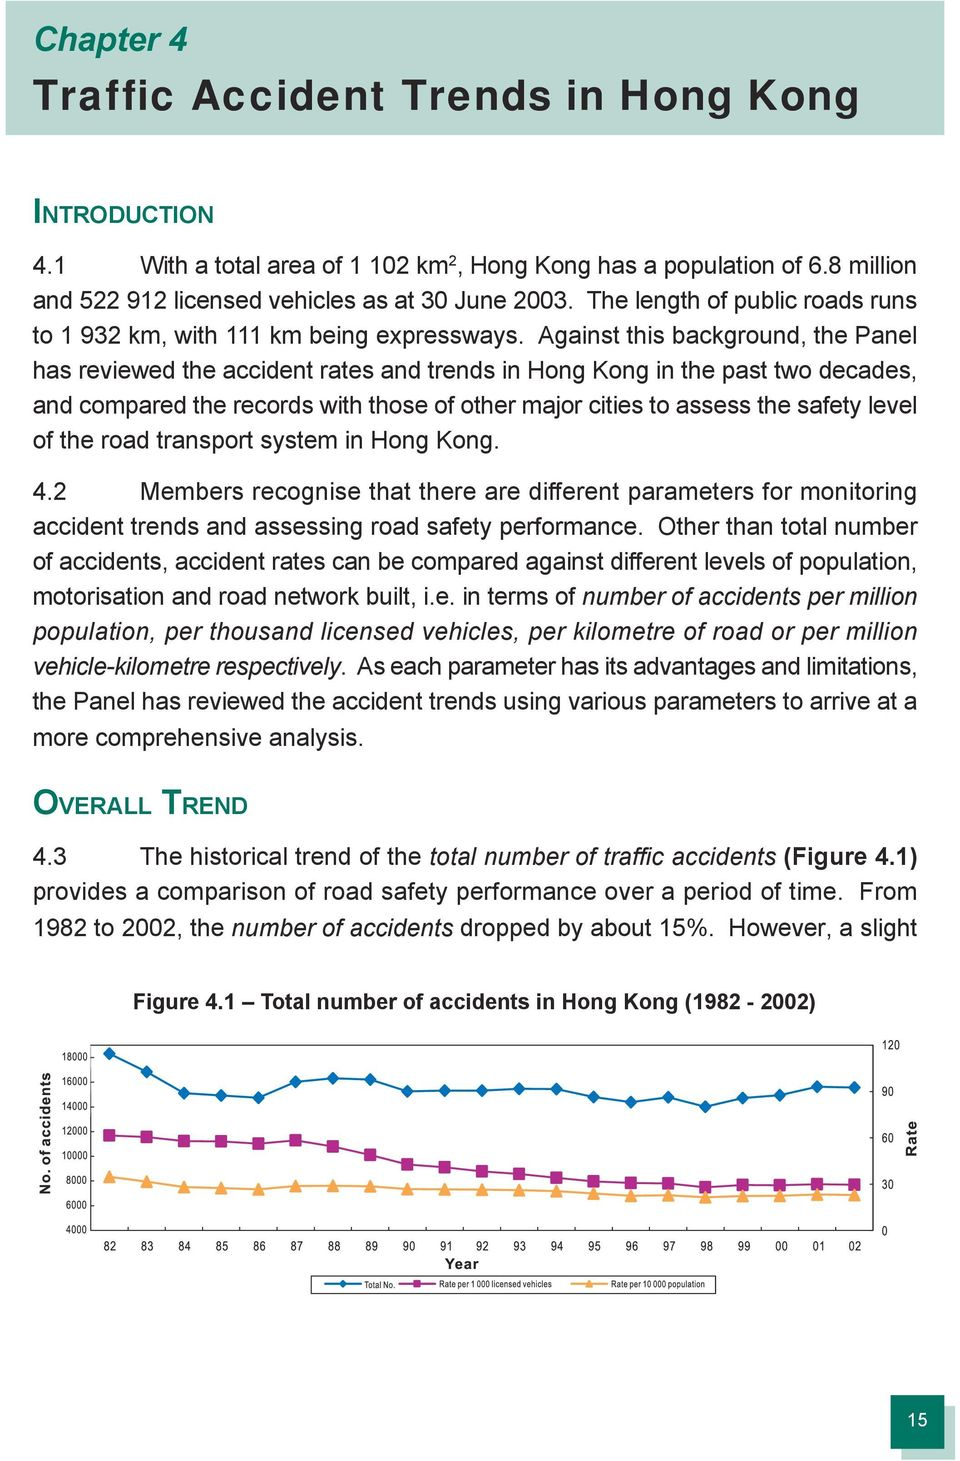 Against this background, the Panel has reviewed the accident rates and trends in Hong Kong in the past two decades, and compared the records with those of other major cities to assess the safety